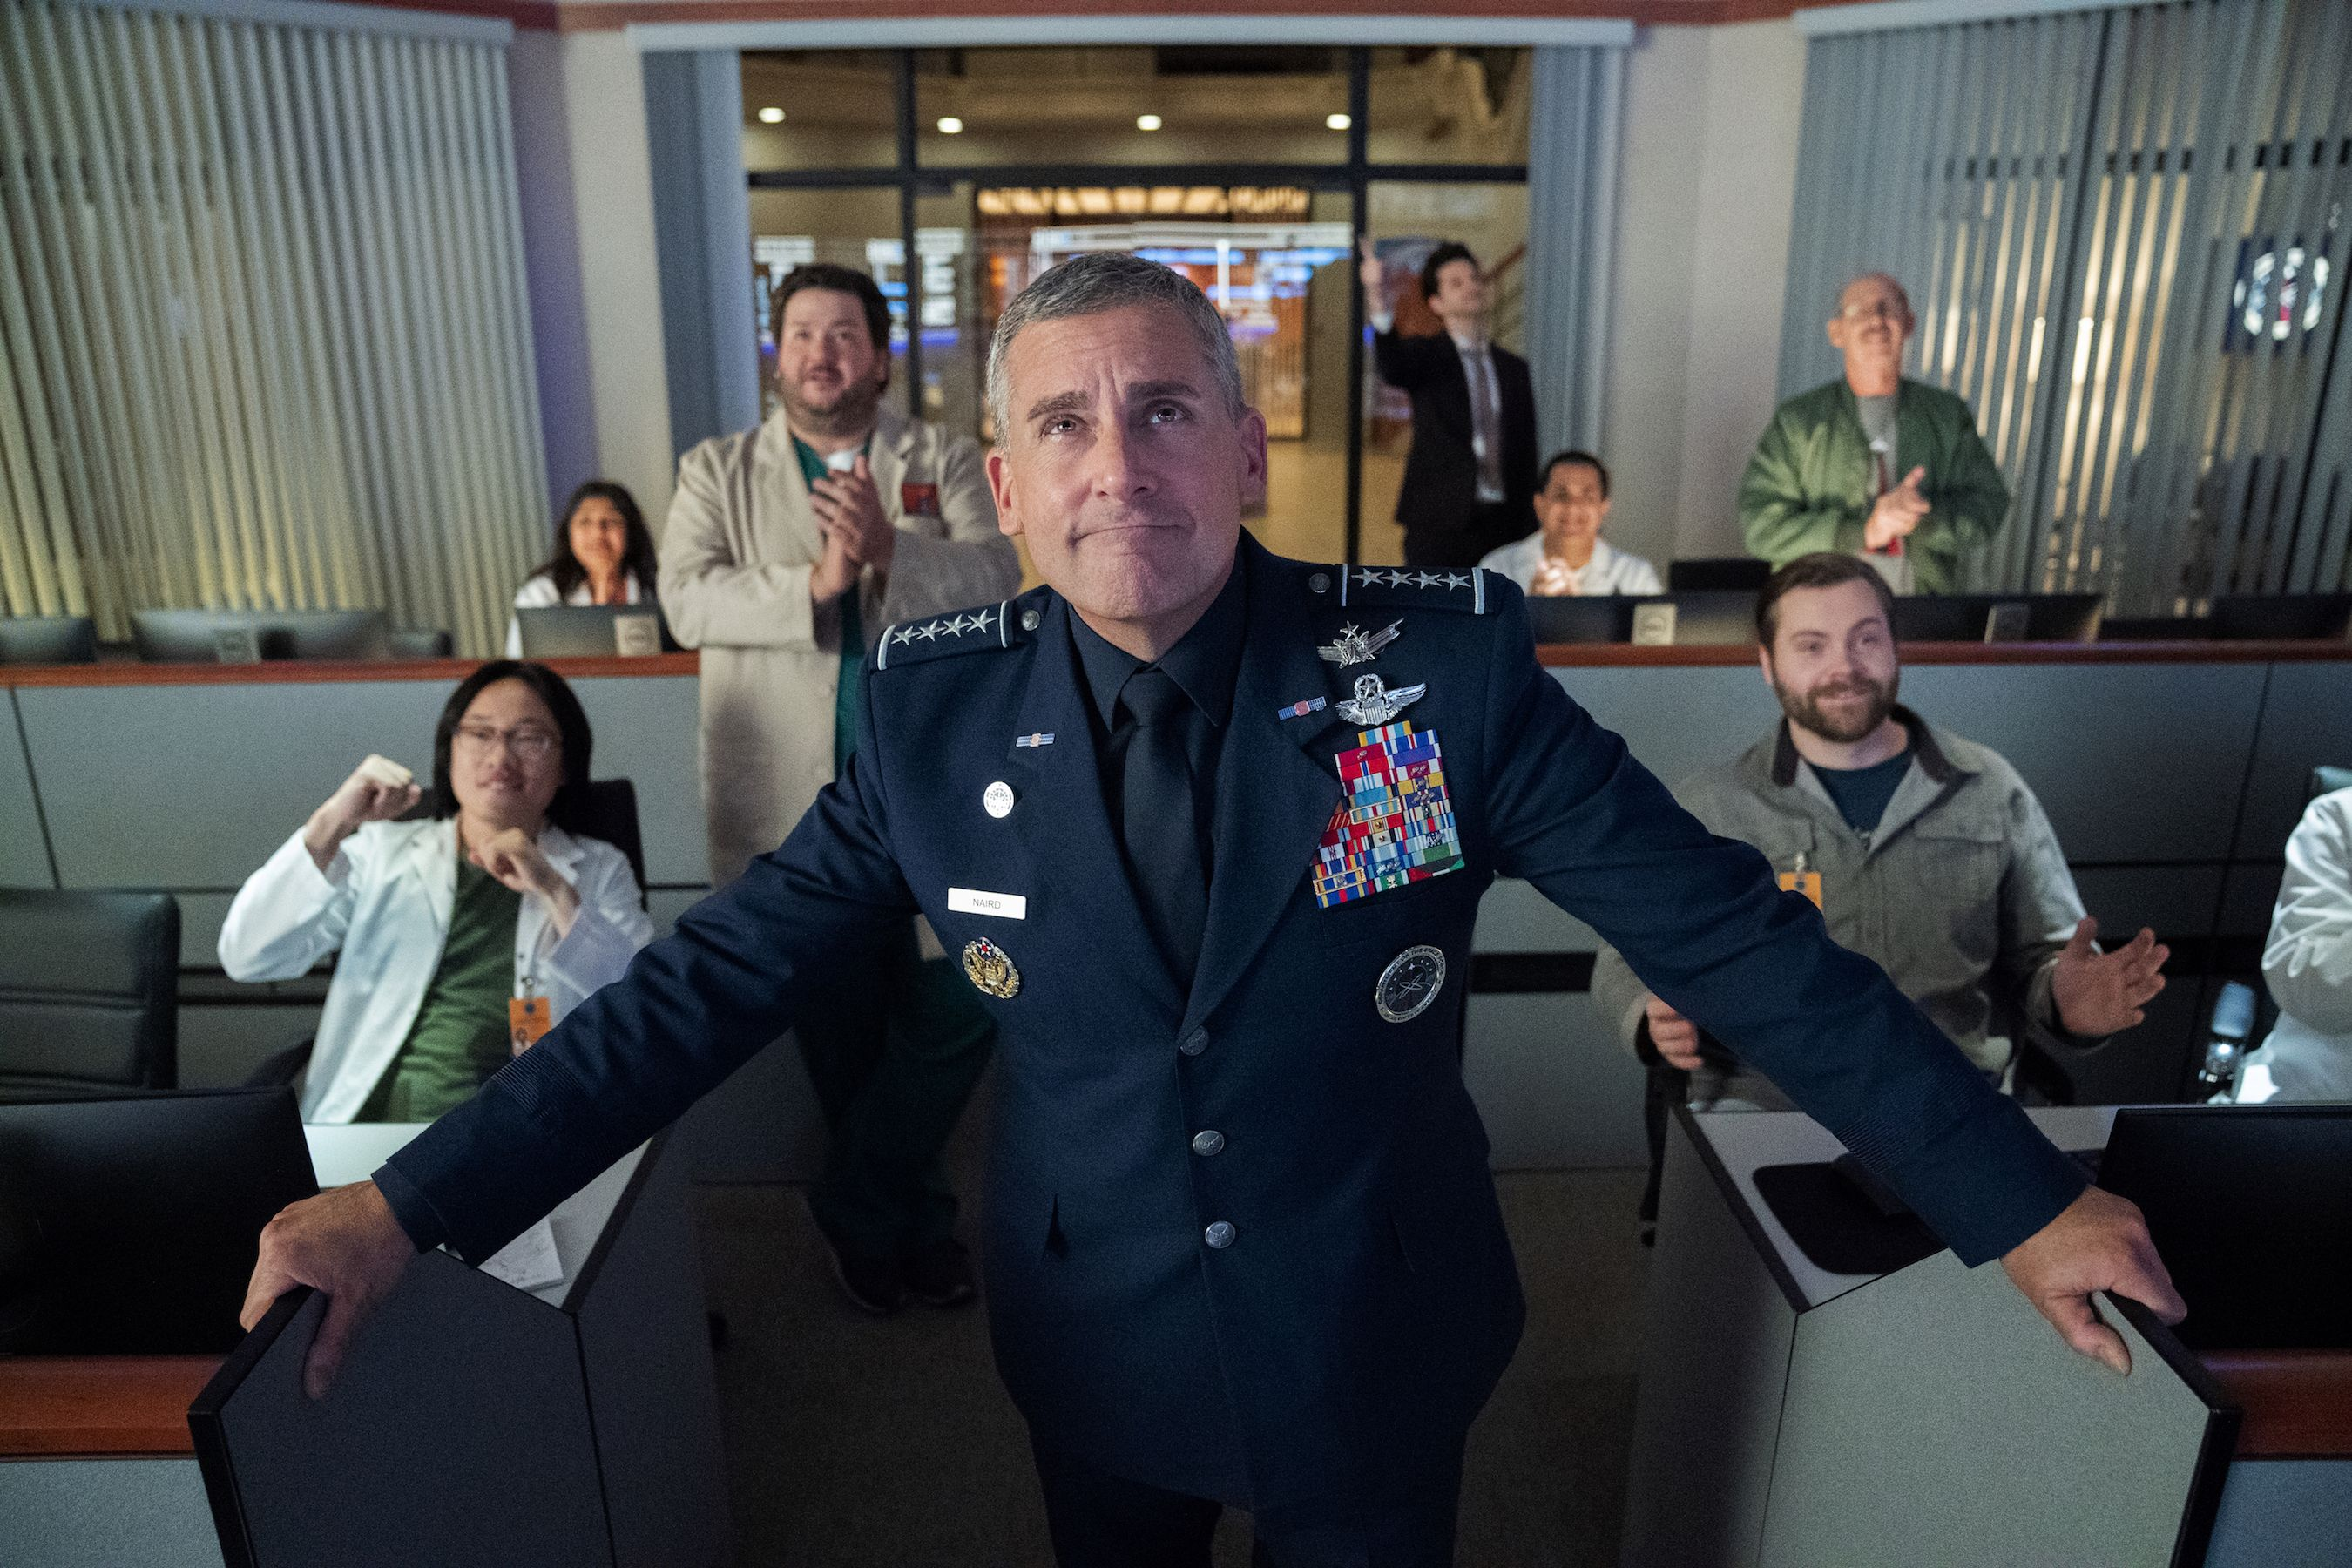 Space Force season 2 - Release date, cast and what will happen